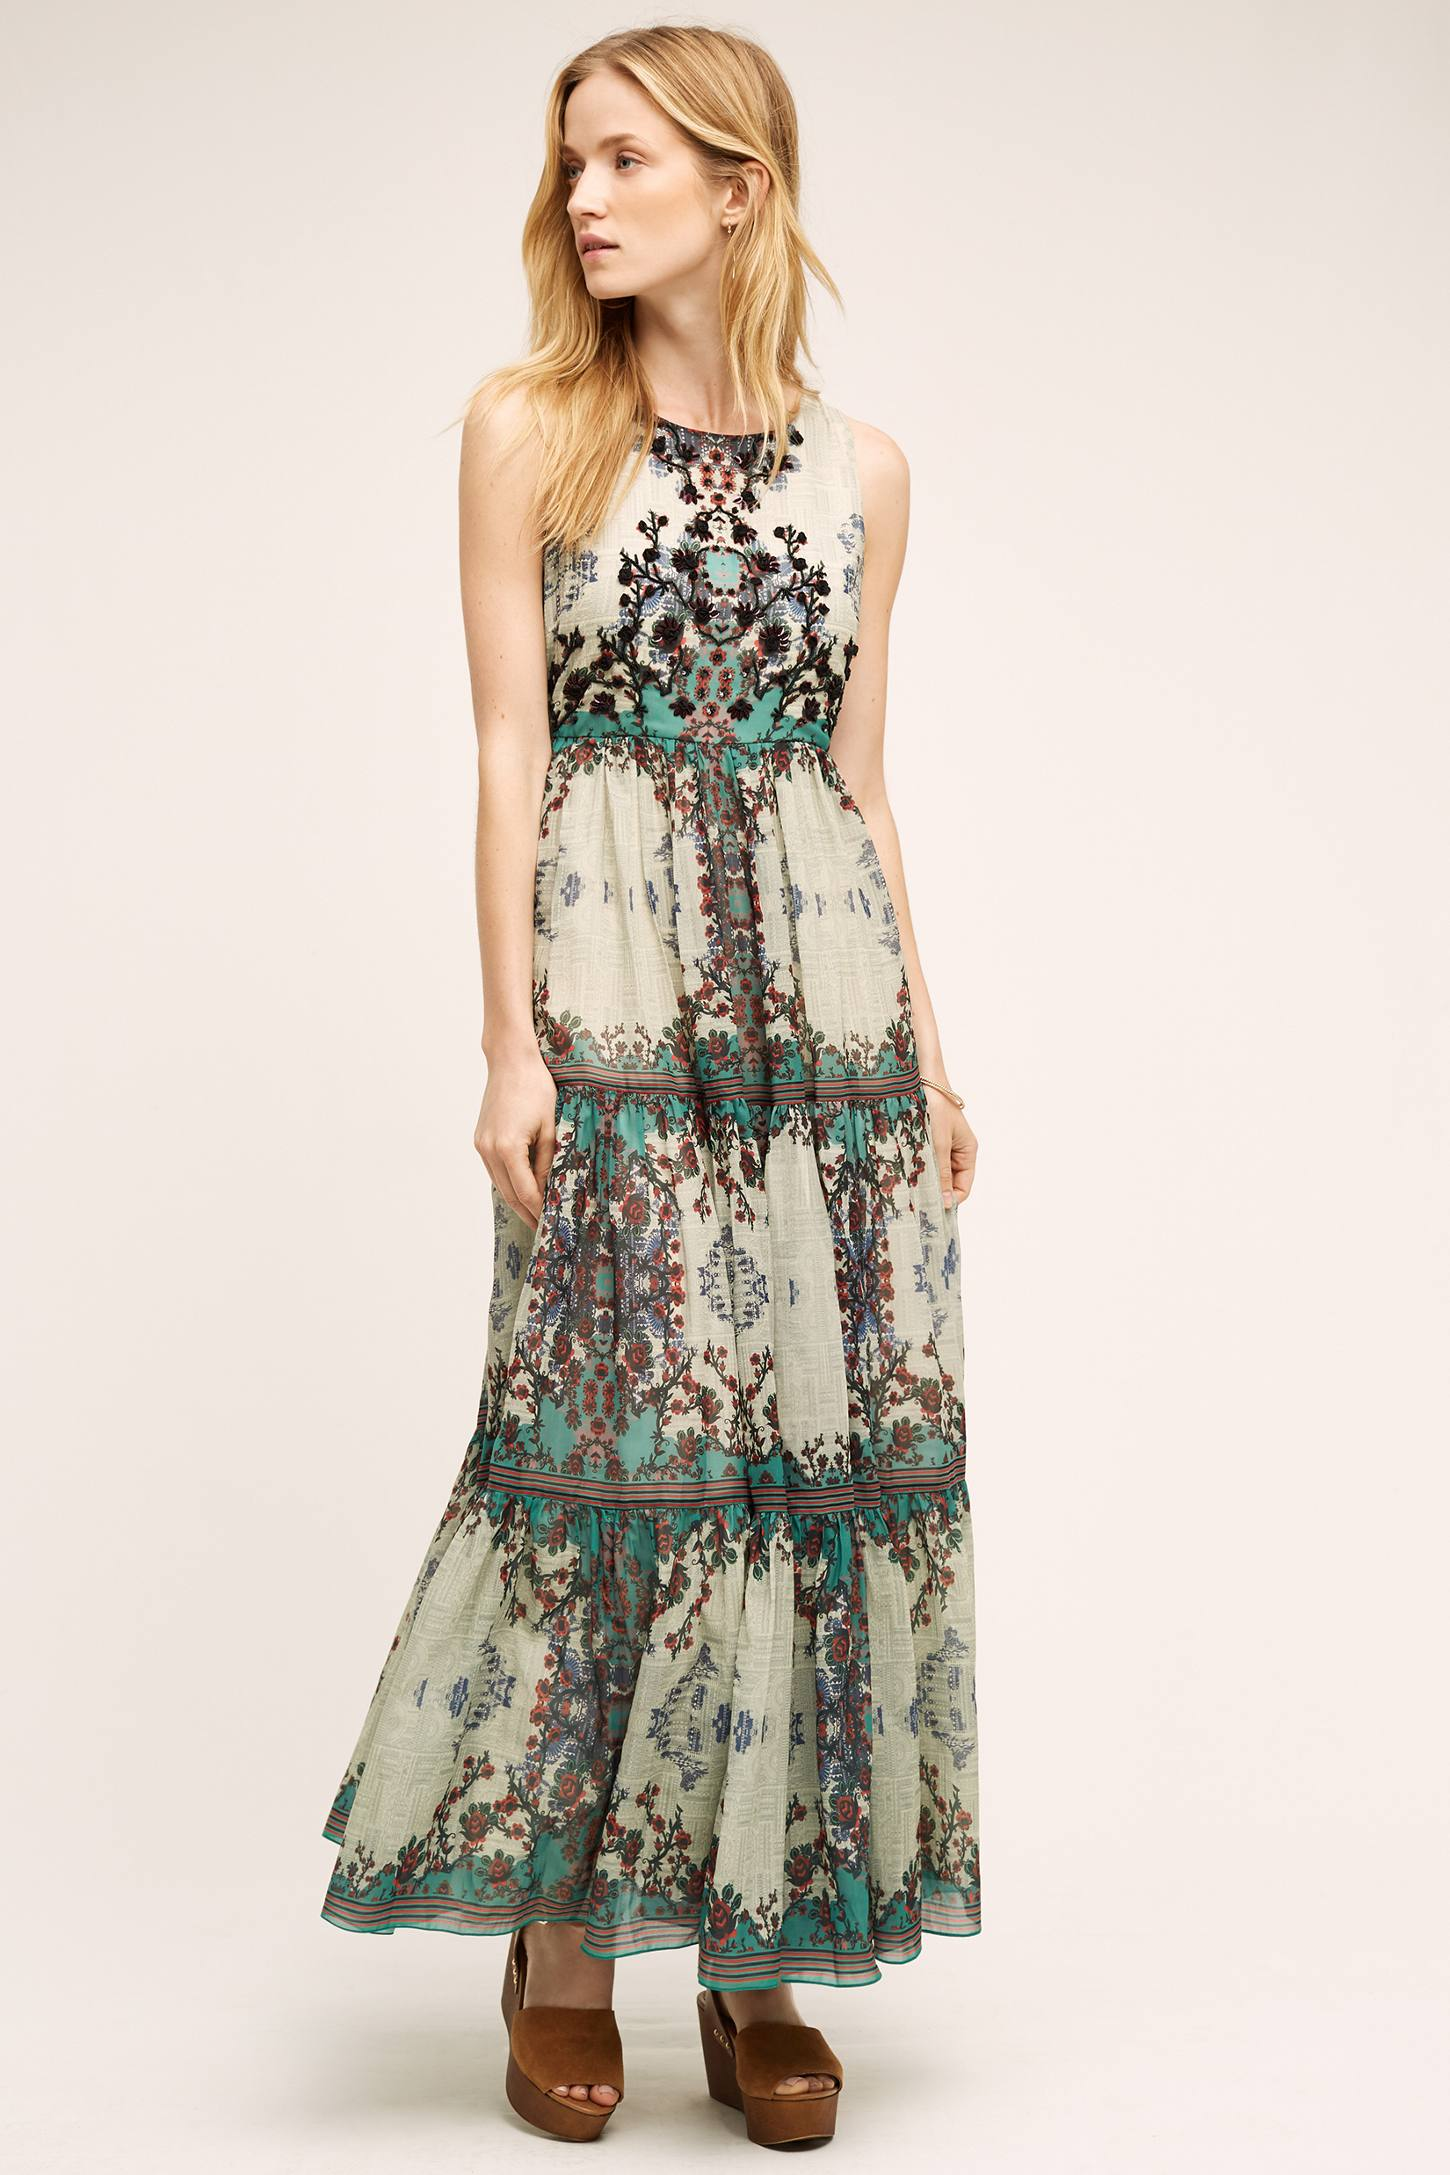 Madera maxi dress anthropologie for Anthropologie mural maxi dress